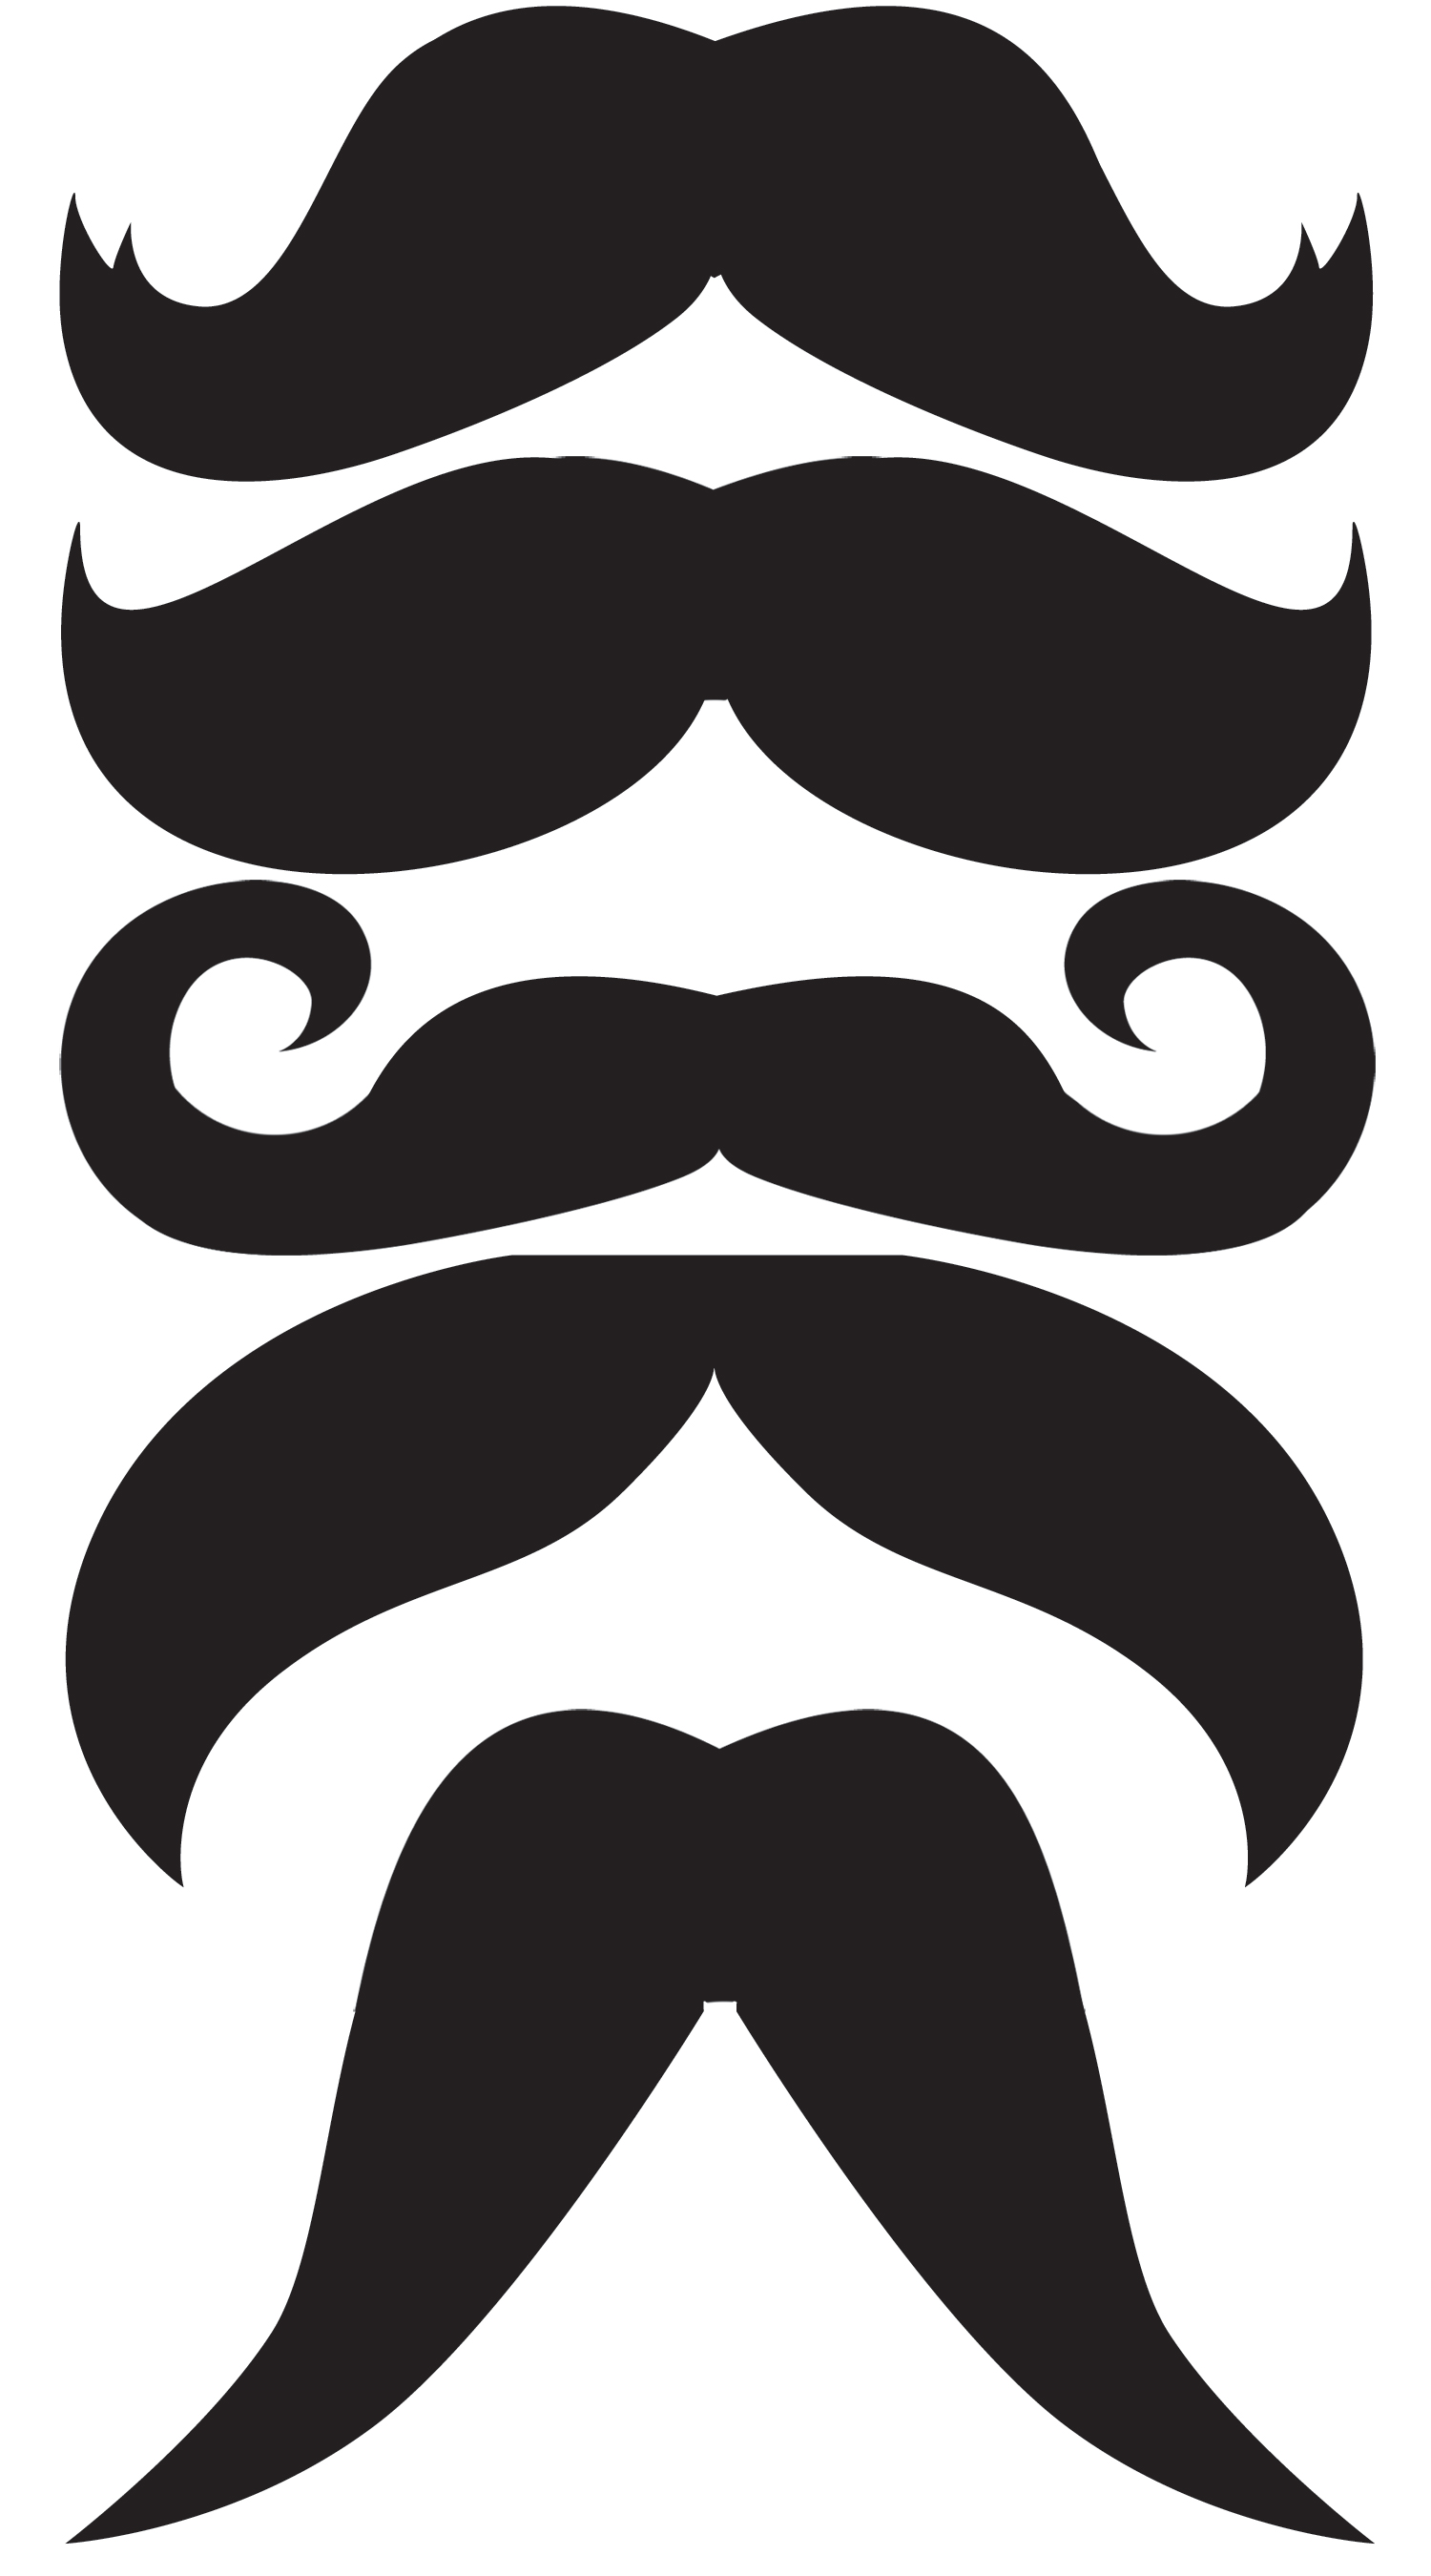 Printables clipart svg black and white library Mustache Printables Clipart - Clipart Kid svg black and white library